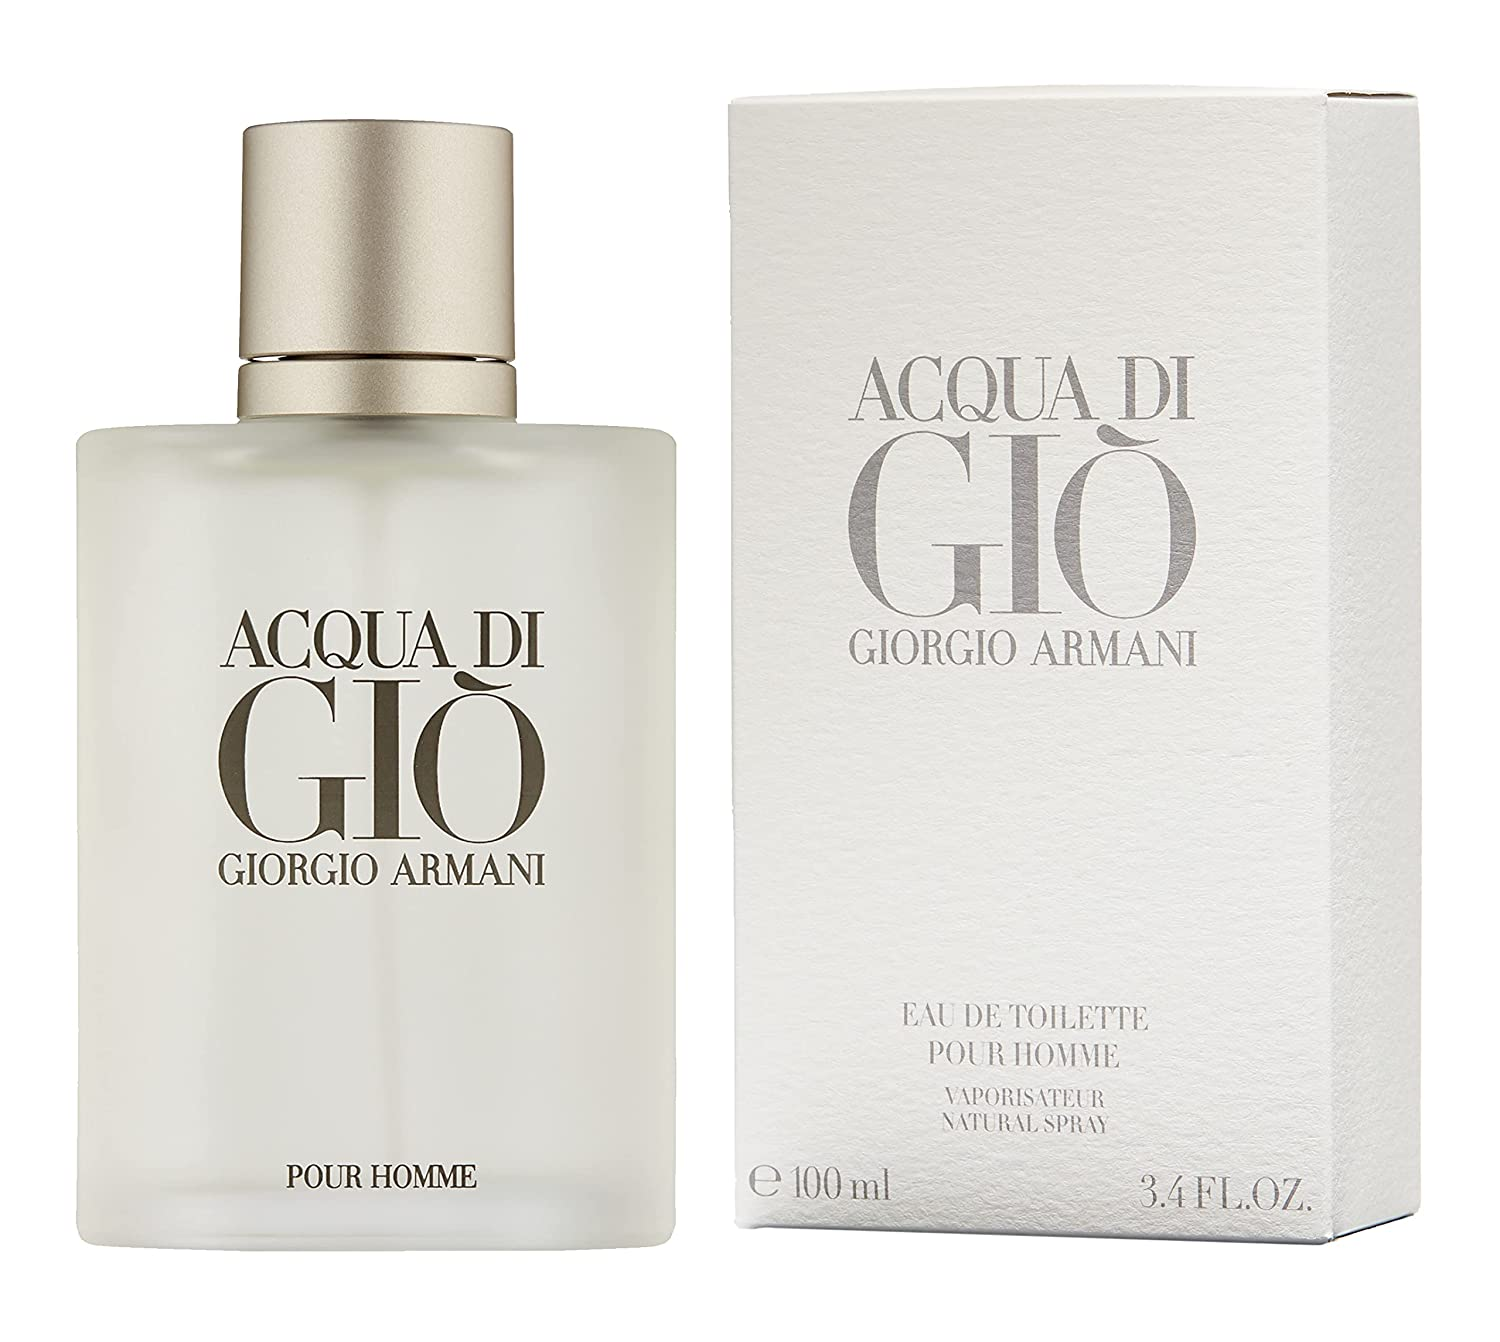 Best Colognes for Men According to Women